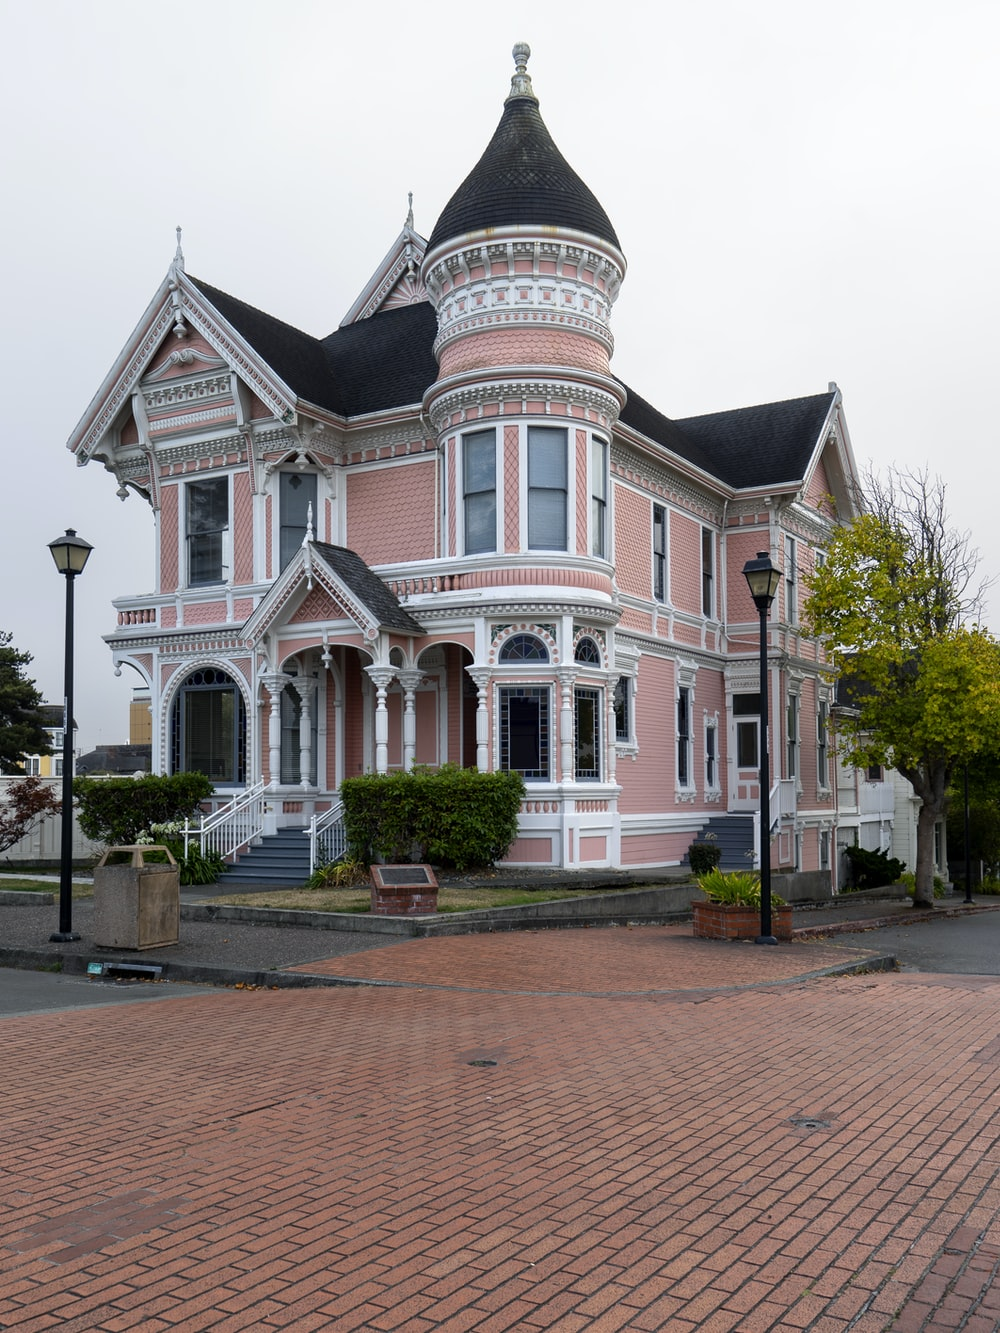 white and pink house near lampposts and road during day